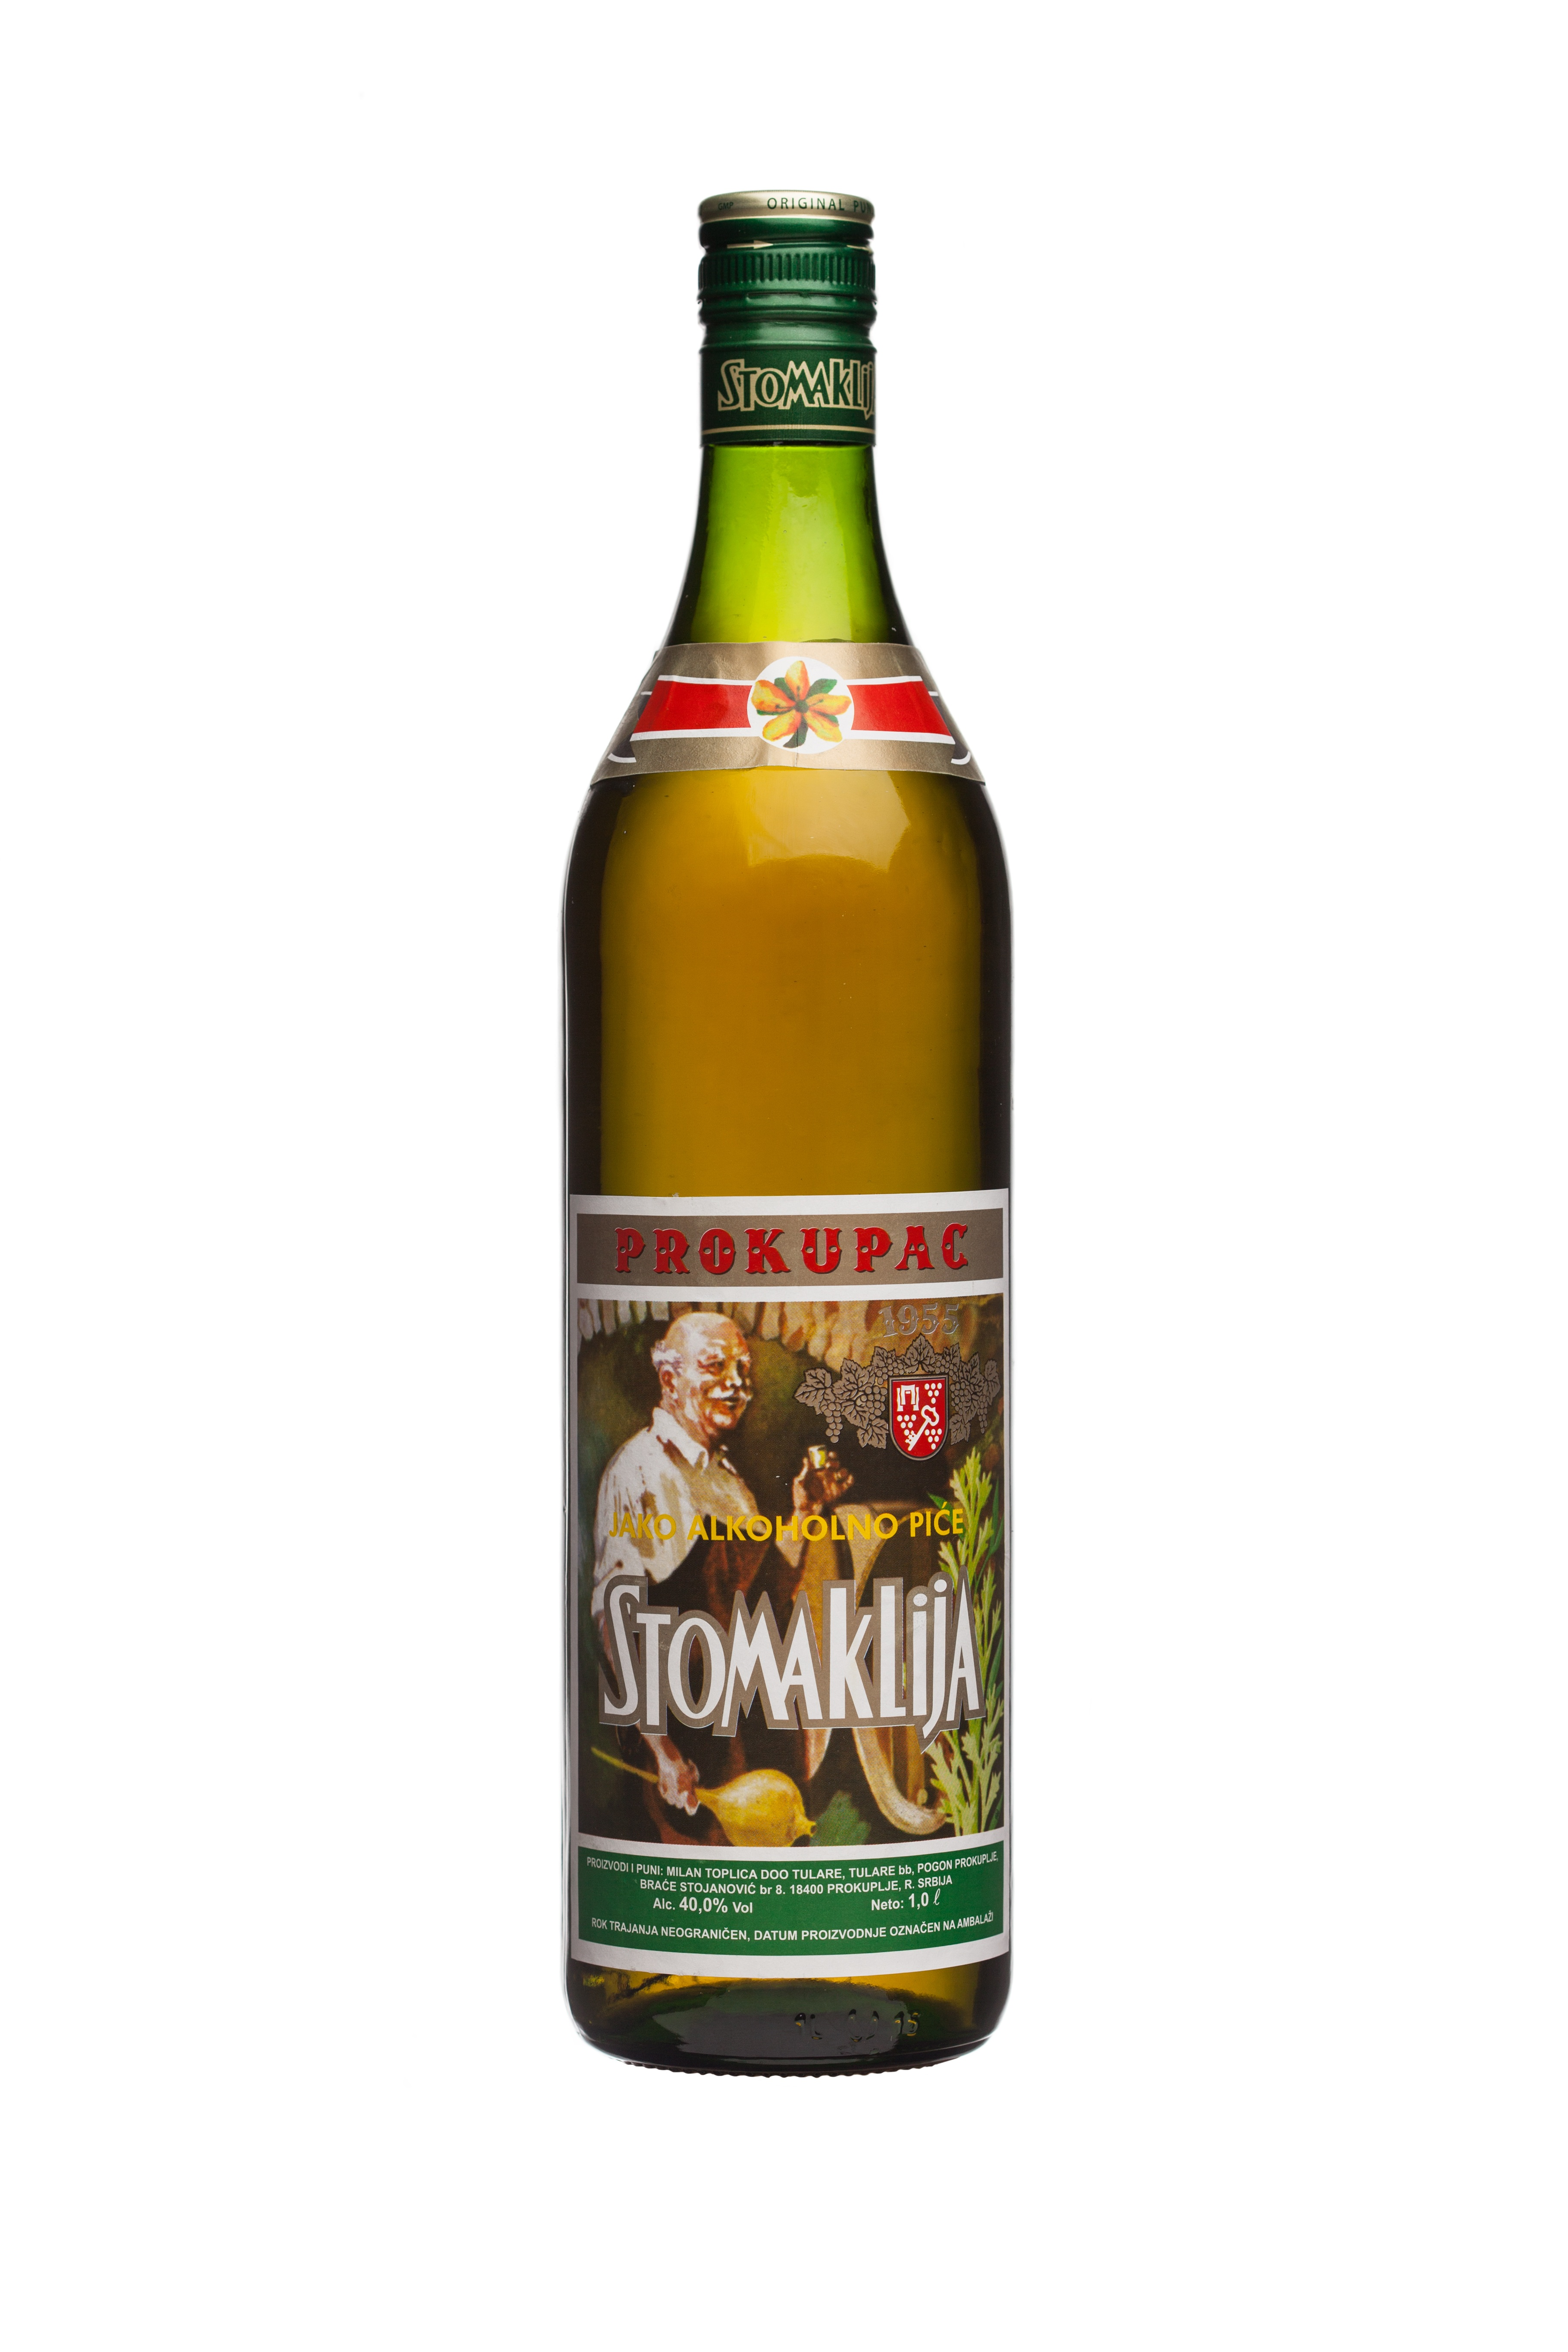 Stomaklija Brandy with Medicinal Herbs